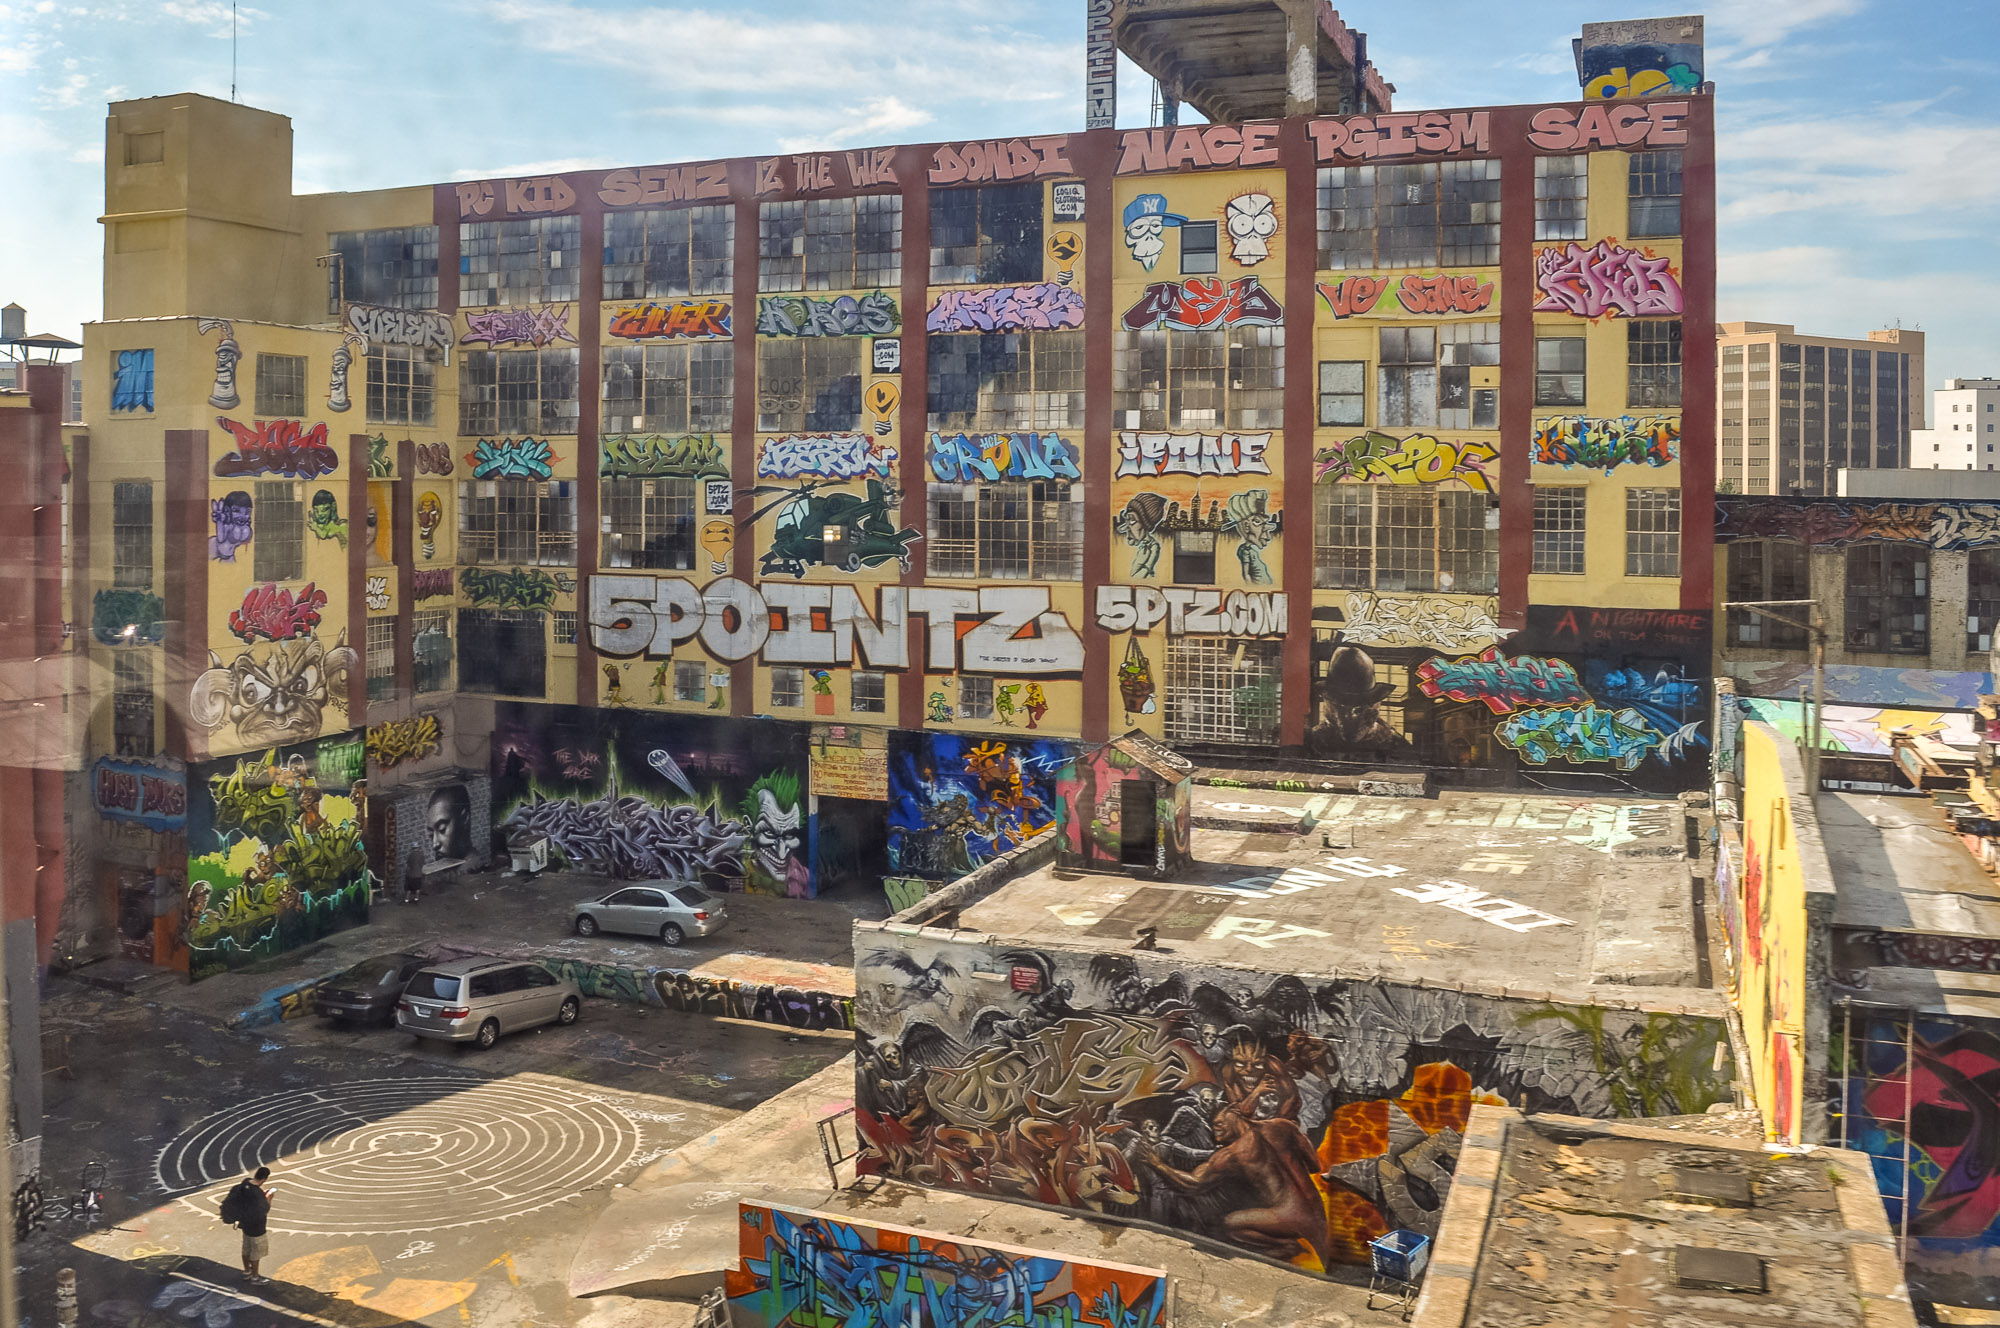 5 Pointz redevelopment expansion gets unexpected community board support